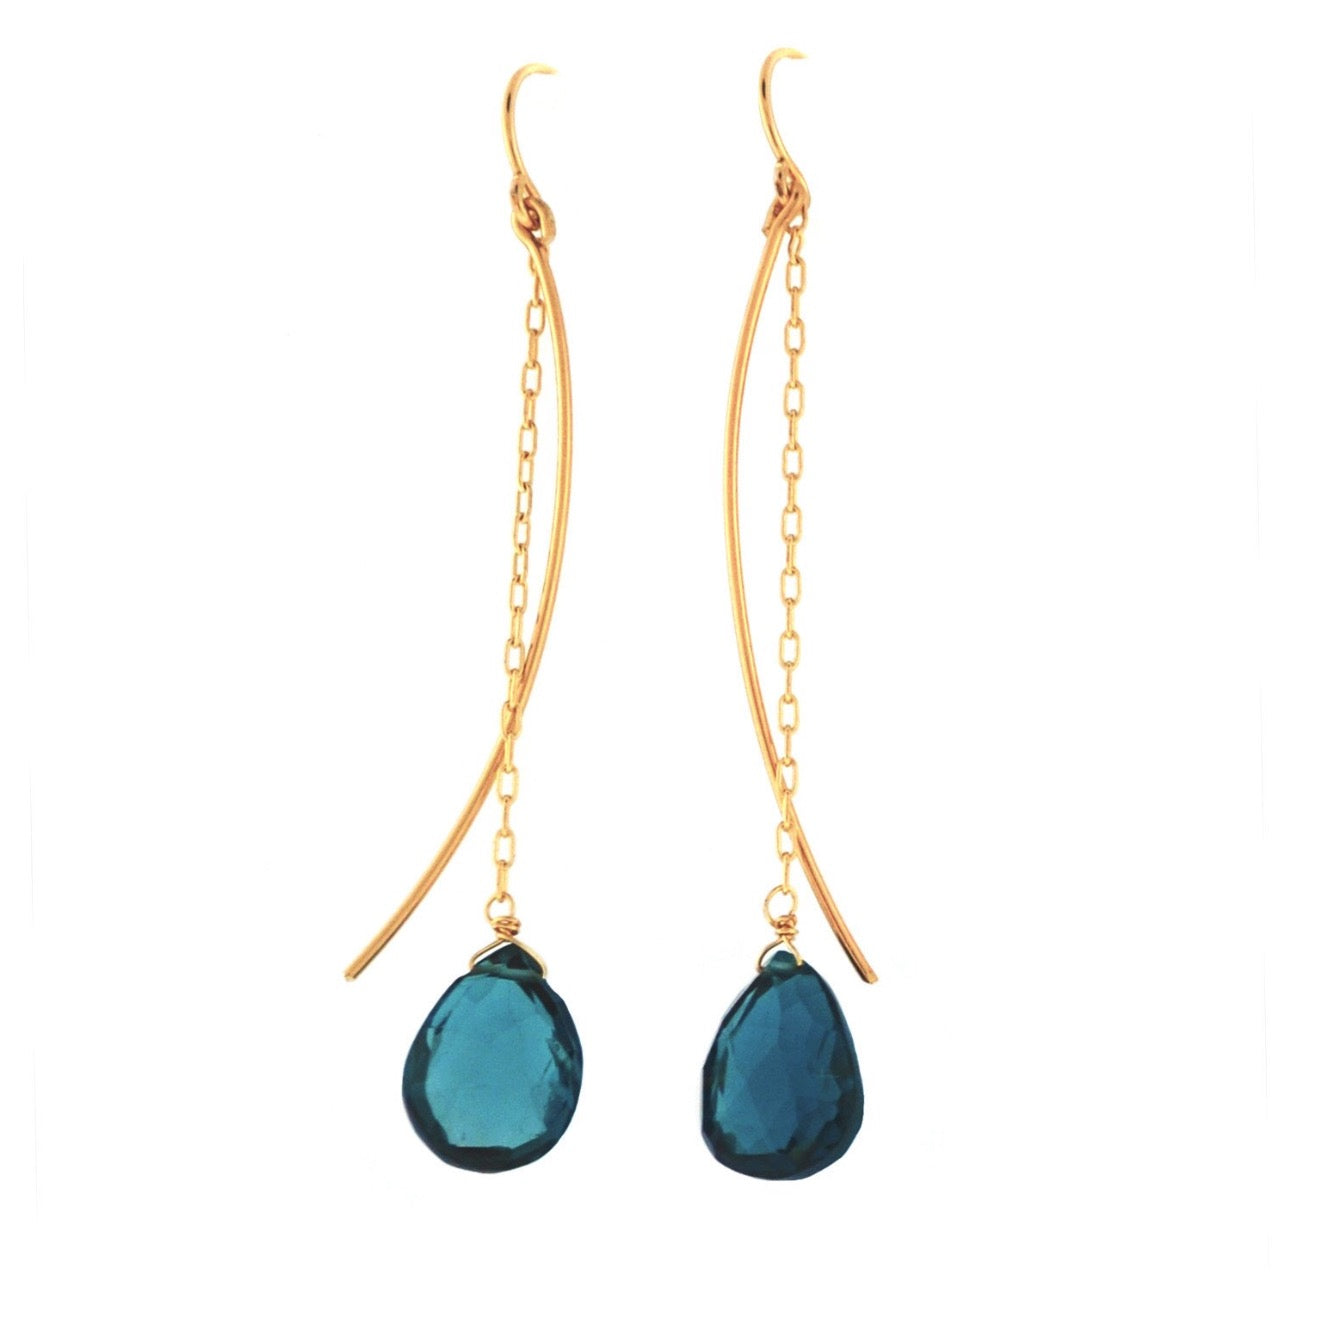 Charm School Earrings - London Blue Topaz